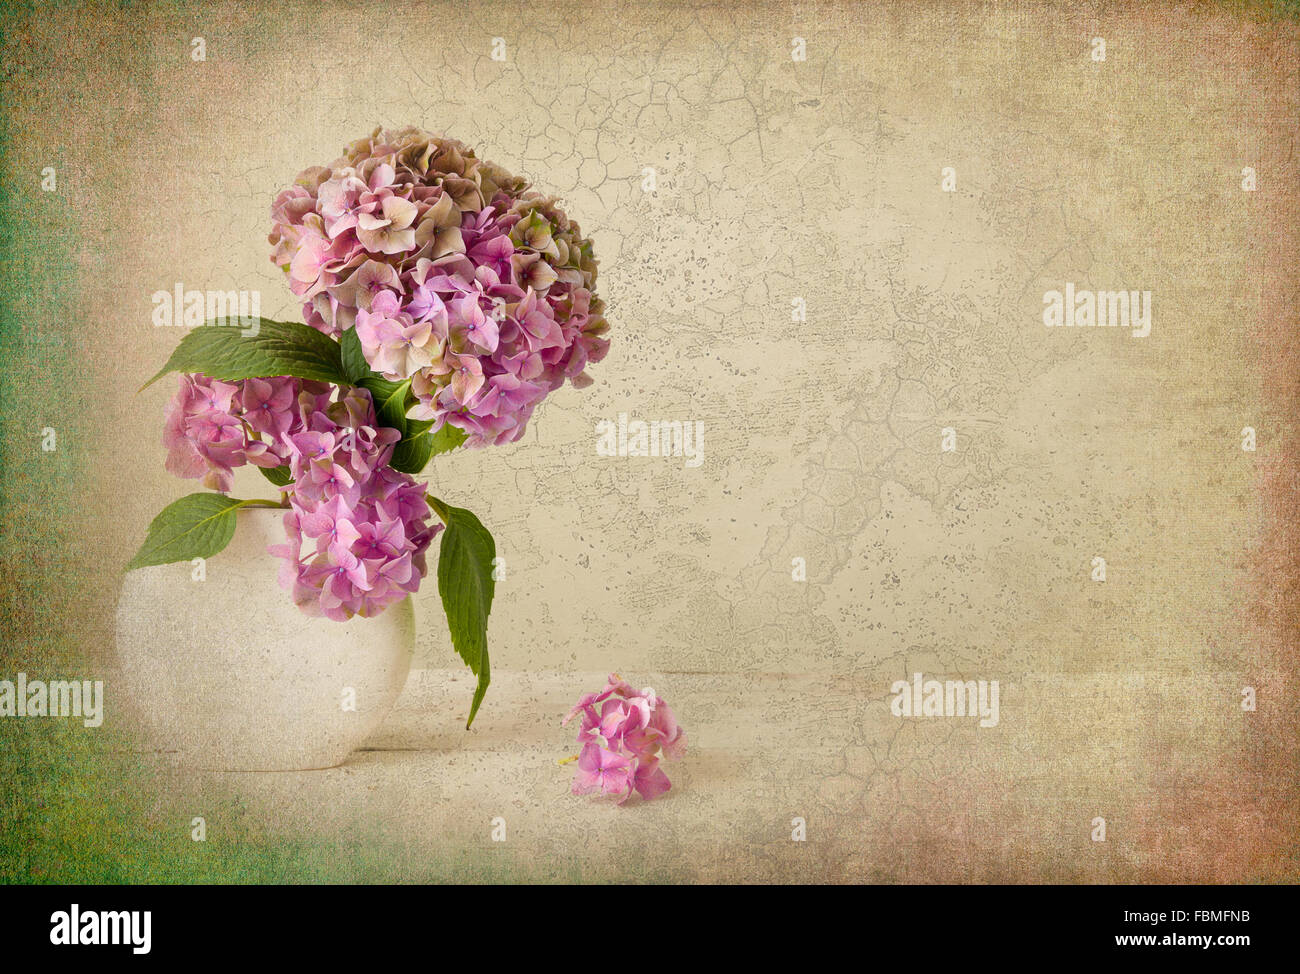 Painterly textured flower still life on old wooden board - Stock Image